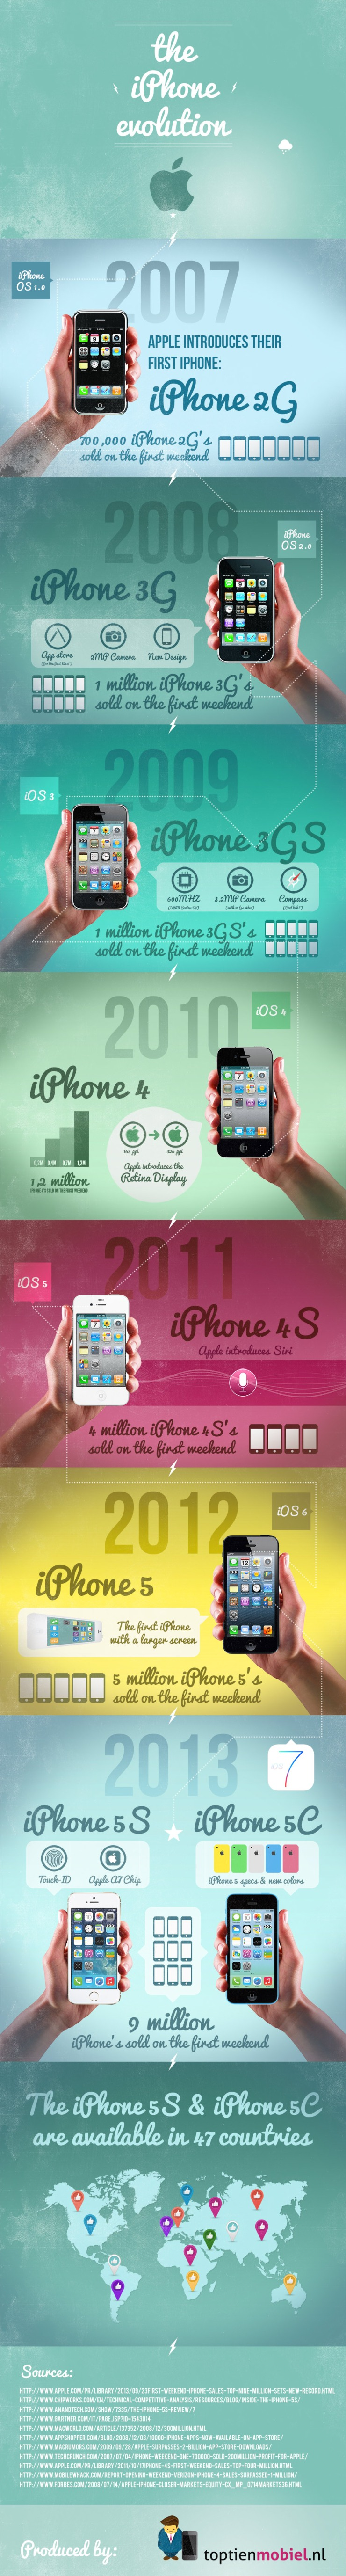 evolucao-iphone-infografico